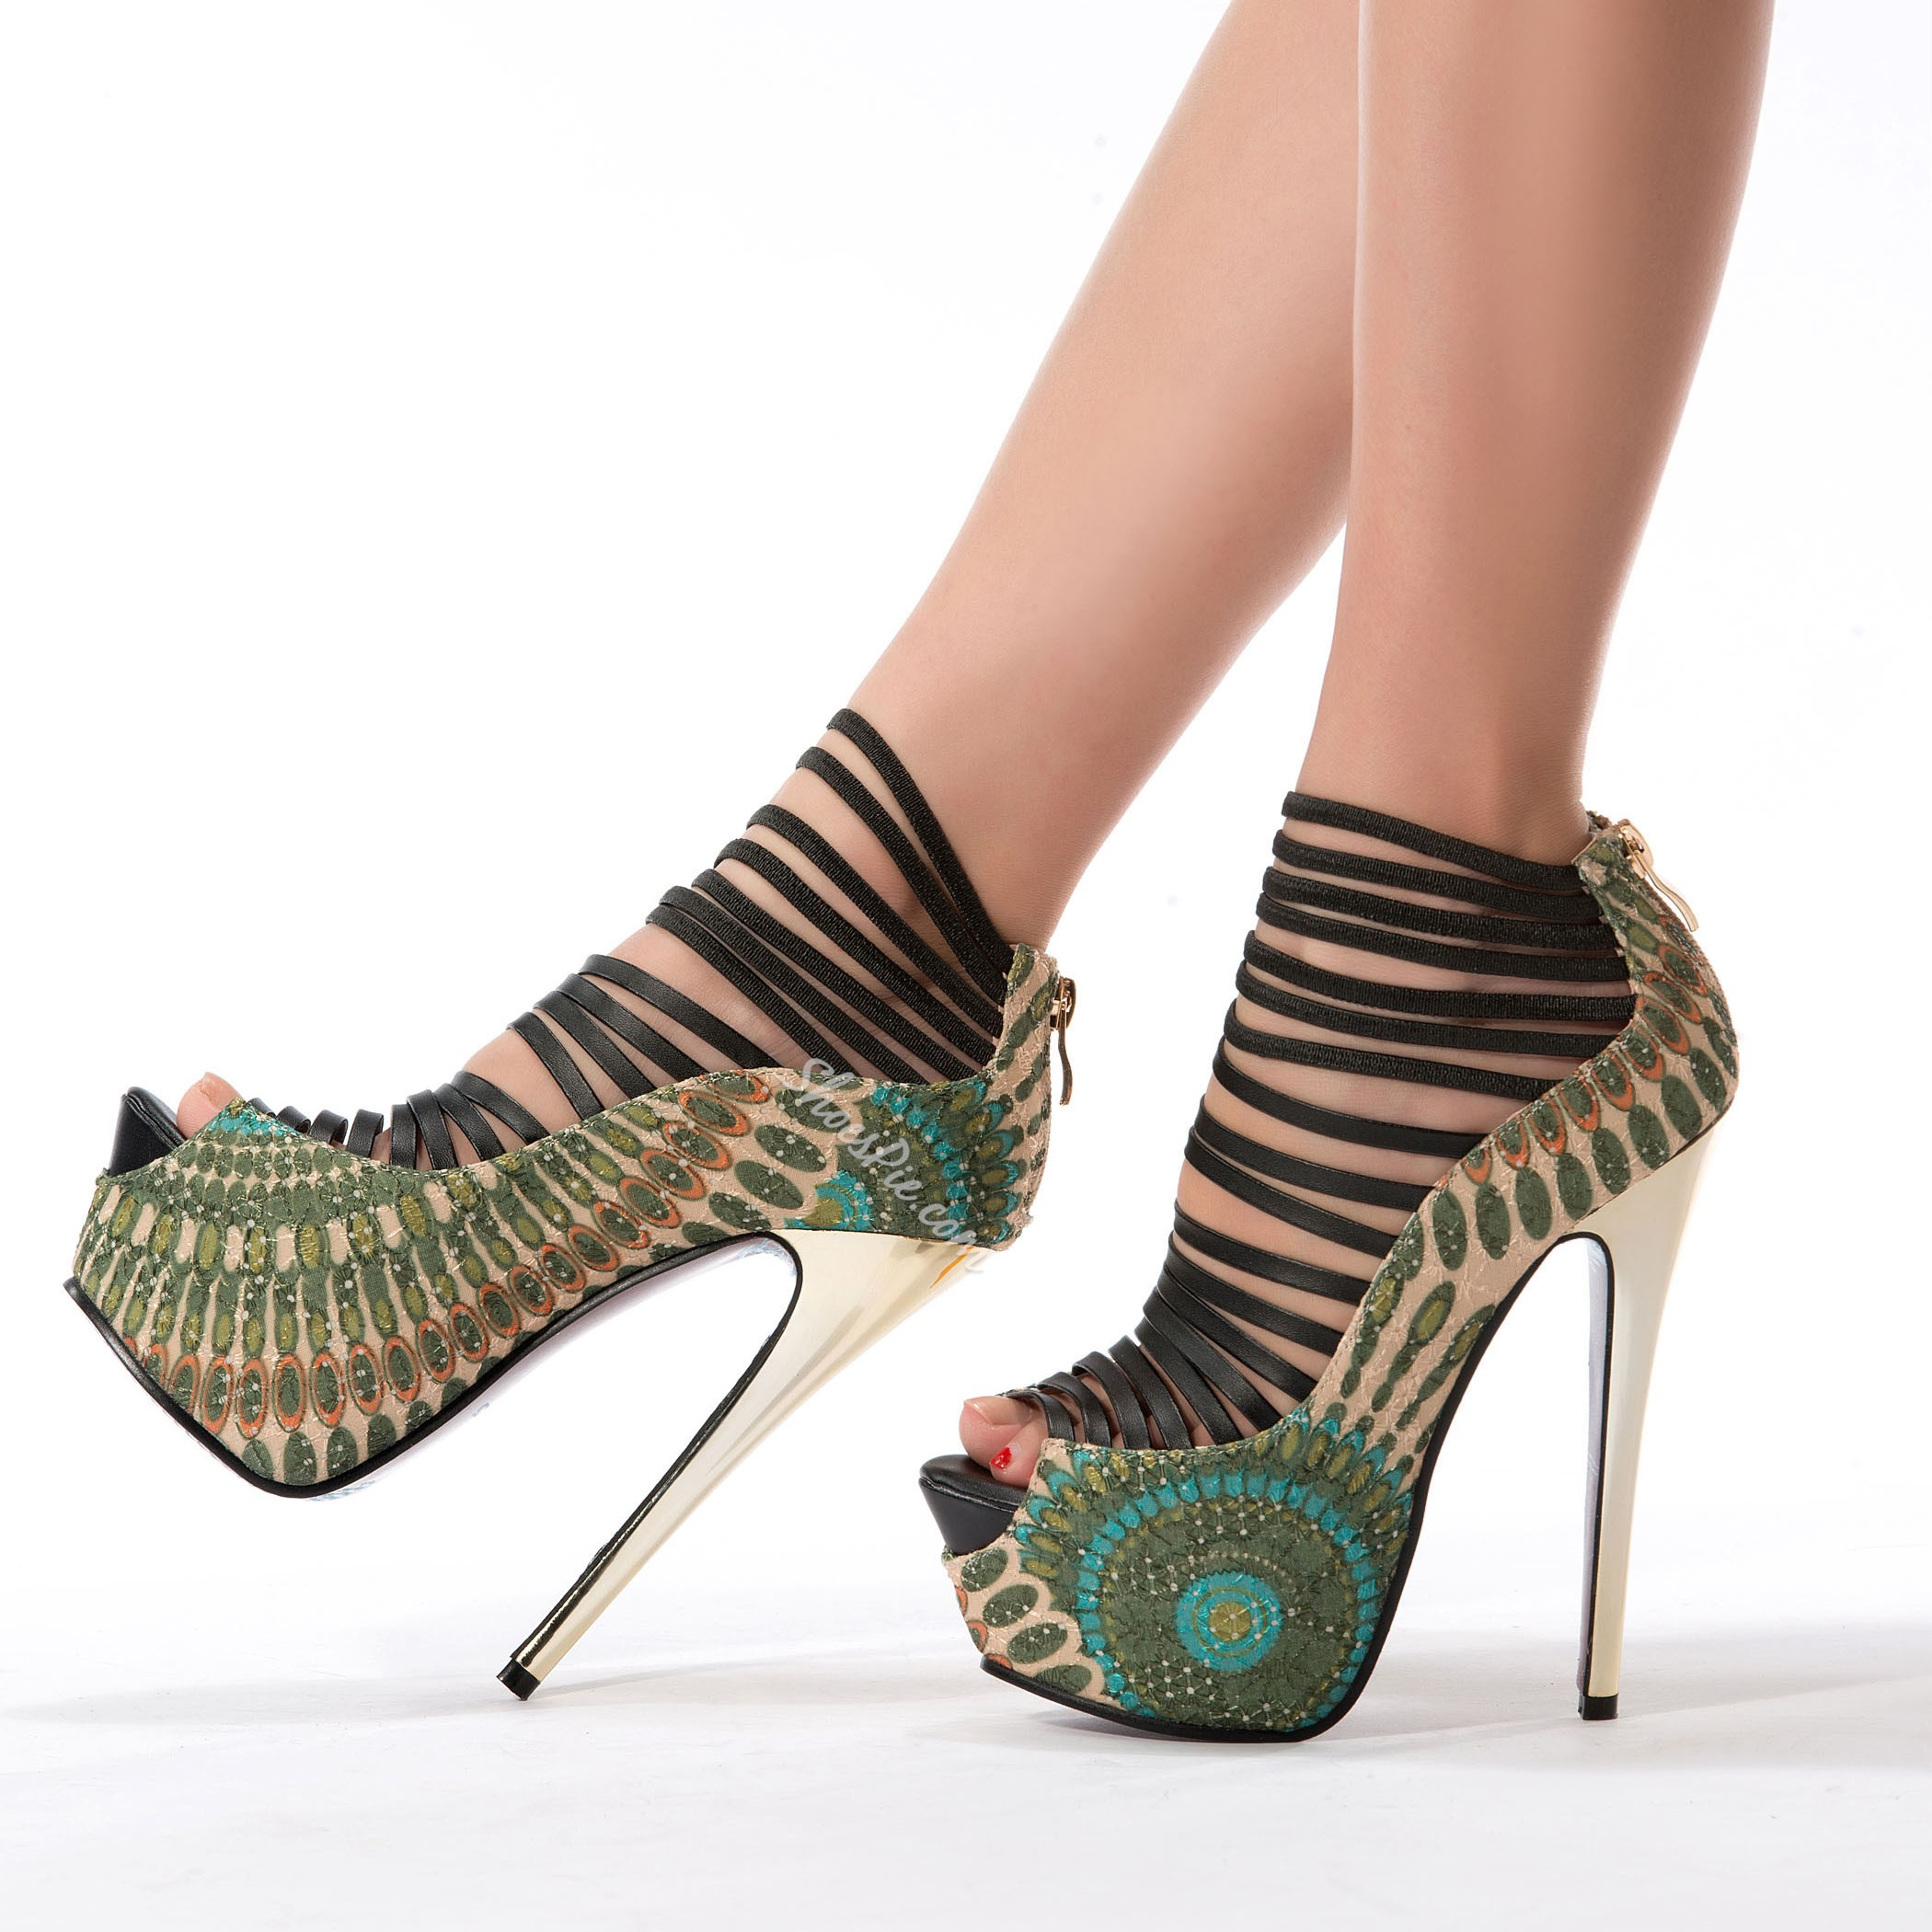 Amazing Flower Print Peep Toe Cut-Outs High Heel Shoes